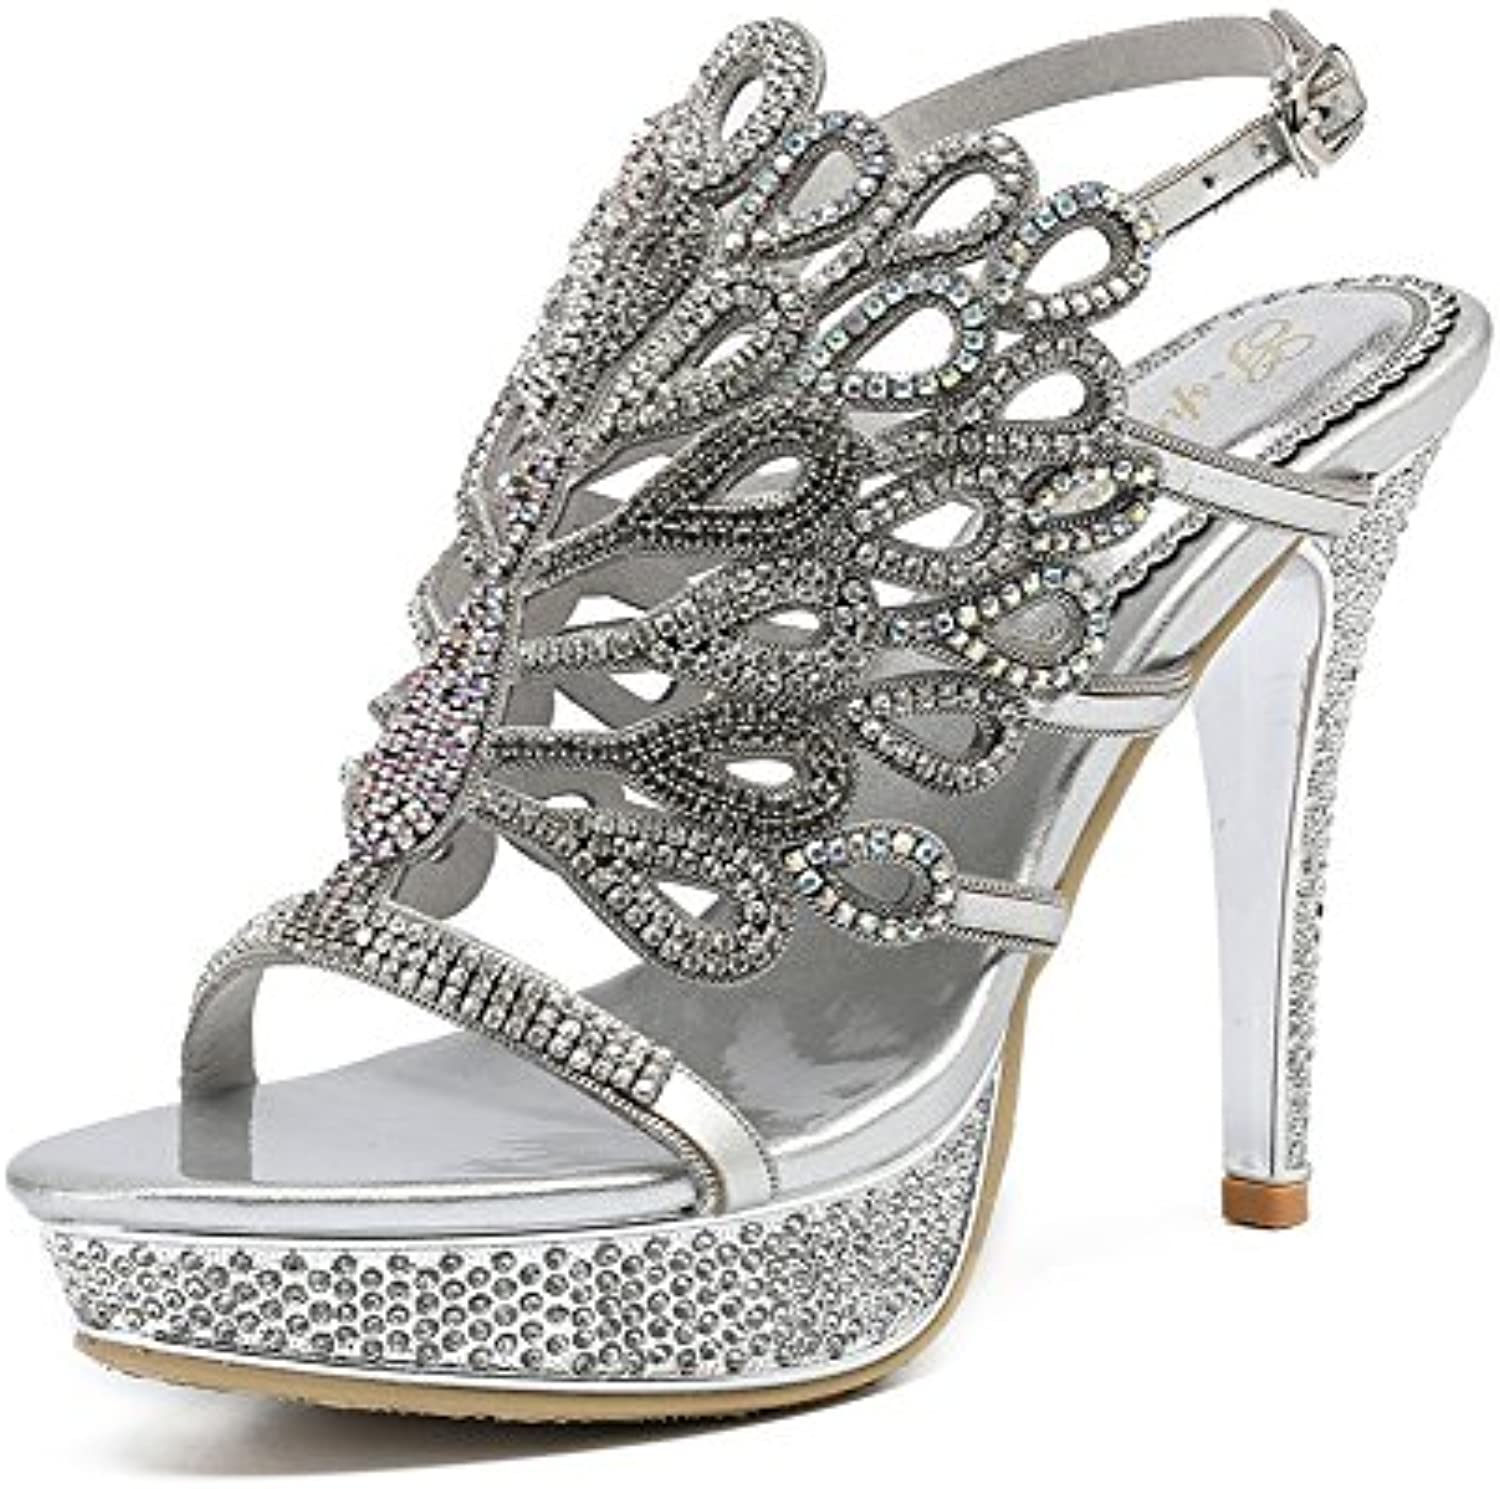 7fe8d20df06 ZPL ZPL ZPL Women s Ladies Mid Low High Heel Strappy Rhinestone peacock  Party Wedding Prom Sandals Shoes Size B07CTP1LYV Parent 2ba9bf